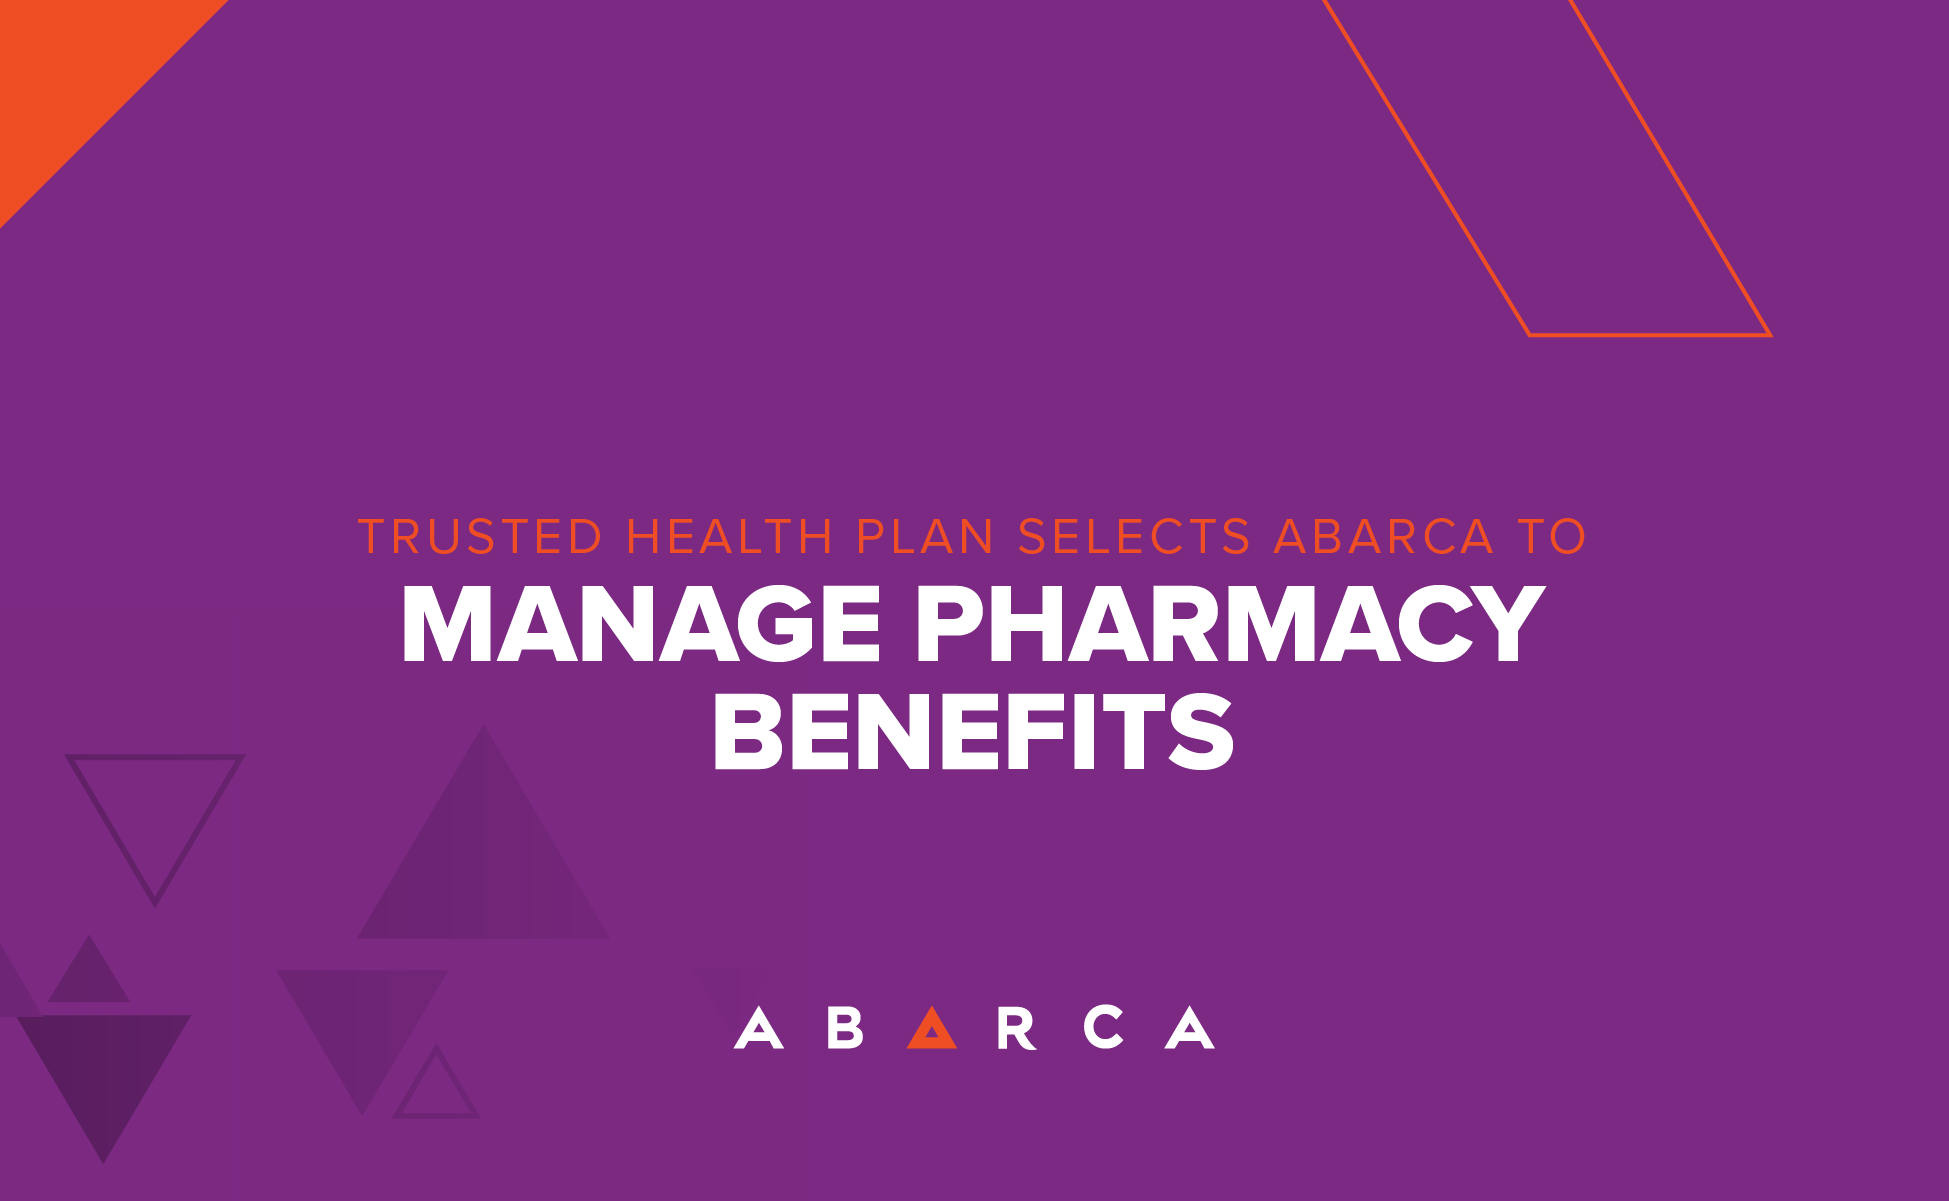 Trusted Health Plan Selects Abarca to Manage Pharmacy Benefits